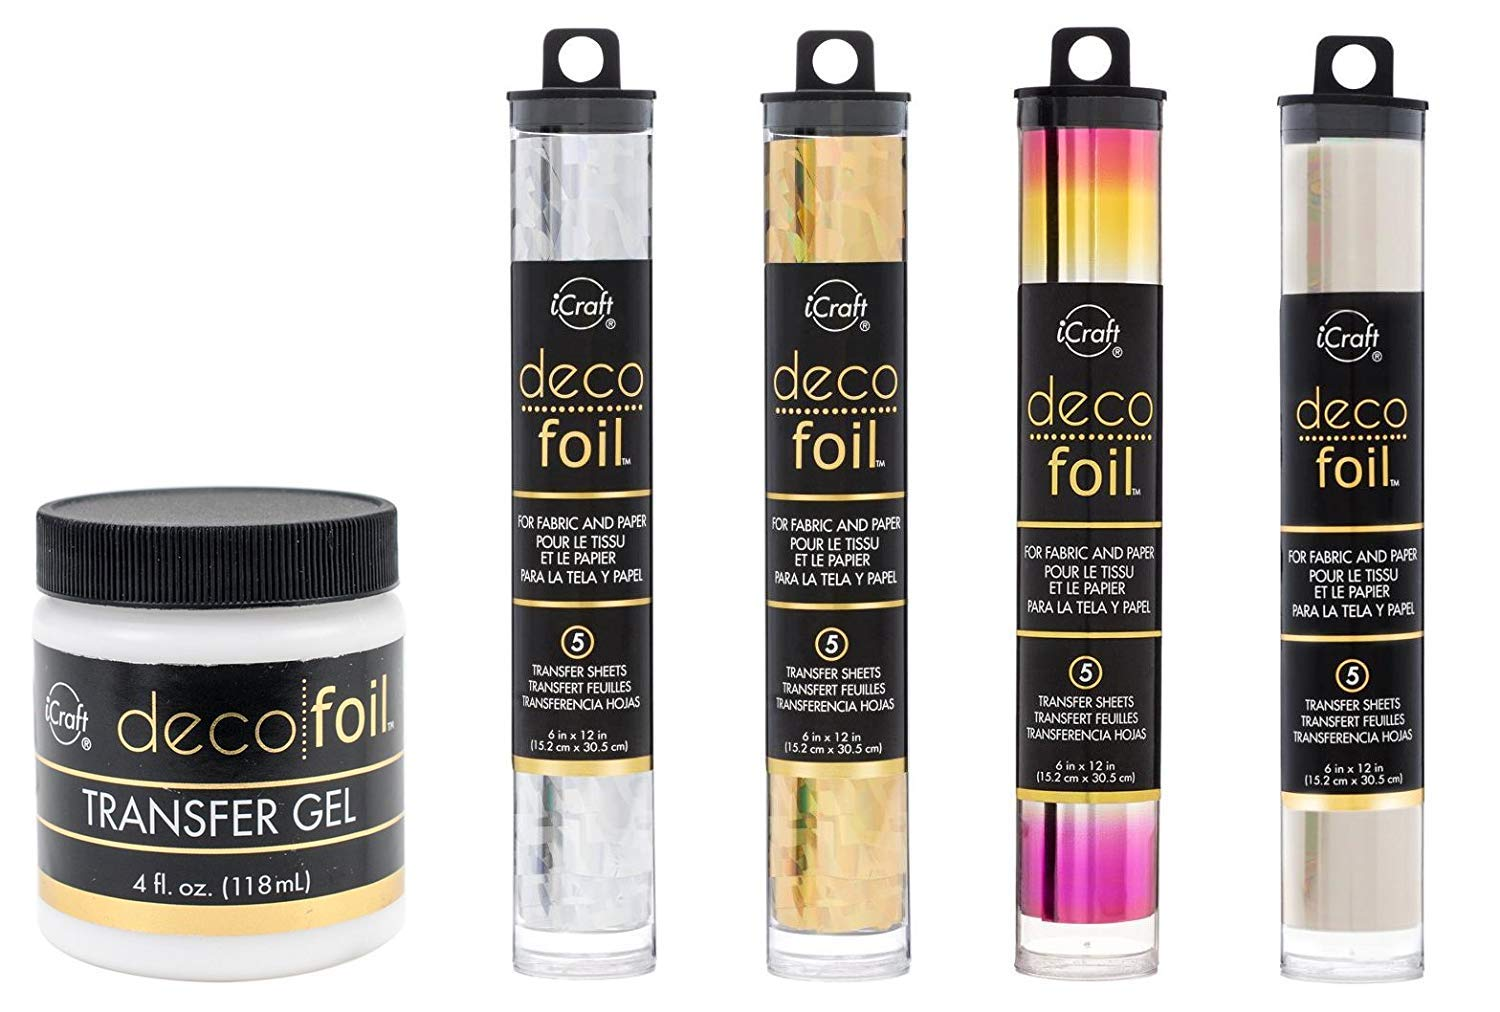 Deco Foil Bundle of 5 Items - Transfer Gel and Specialty Foil Transfer Sheets Set - Shattered Glass Silver, Shattered Glass Gold, Summer Rainbow and Opal by Therm O Web